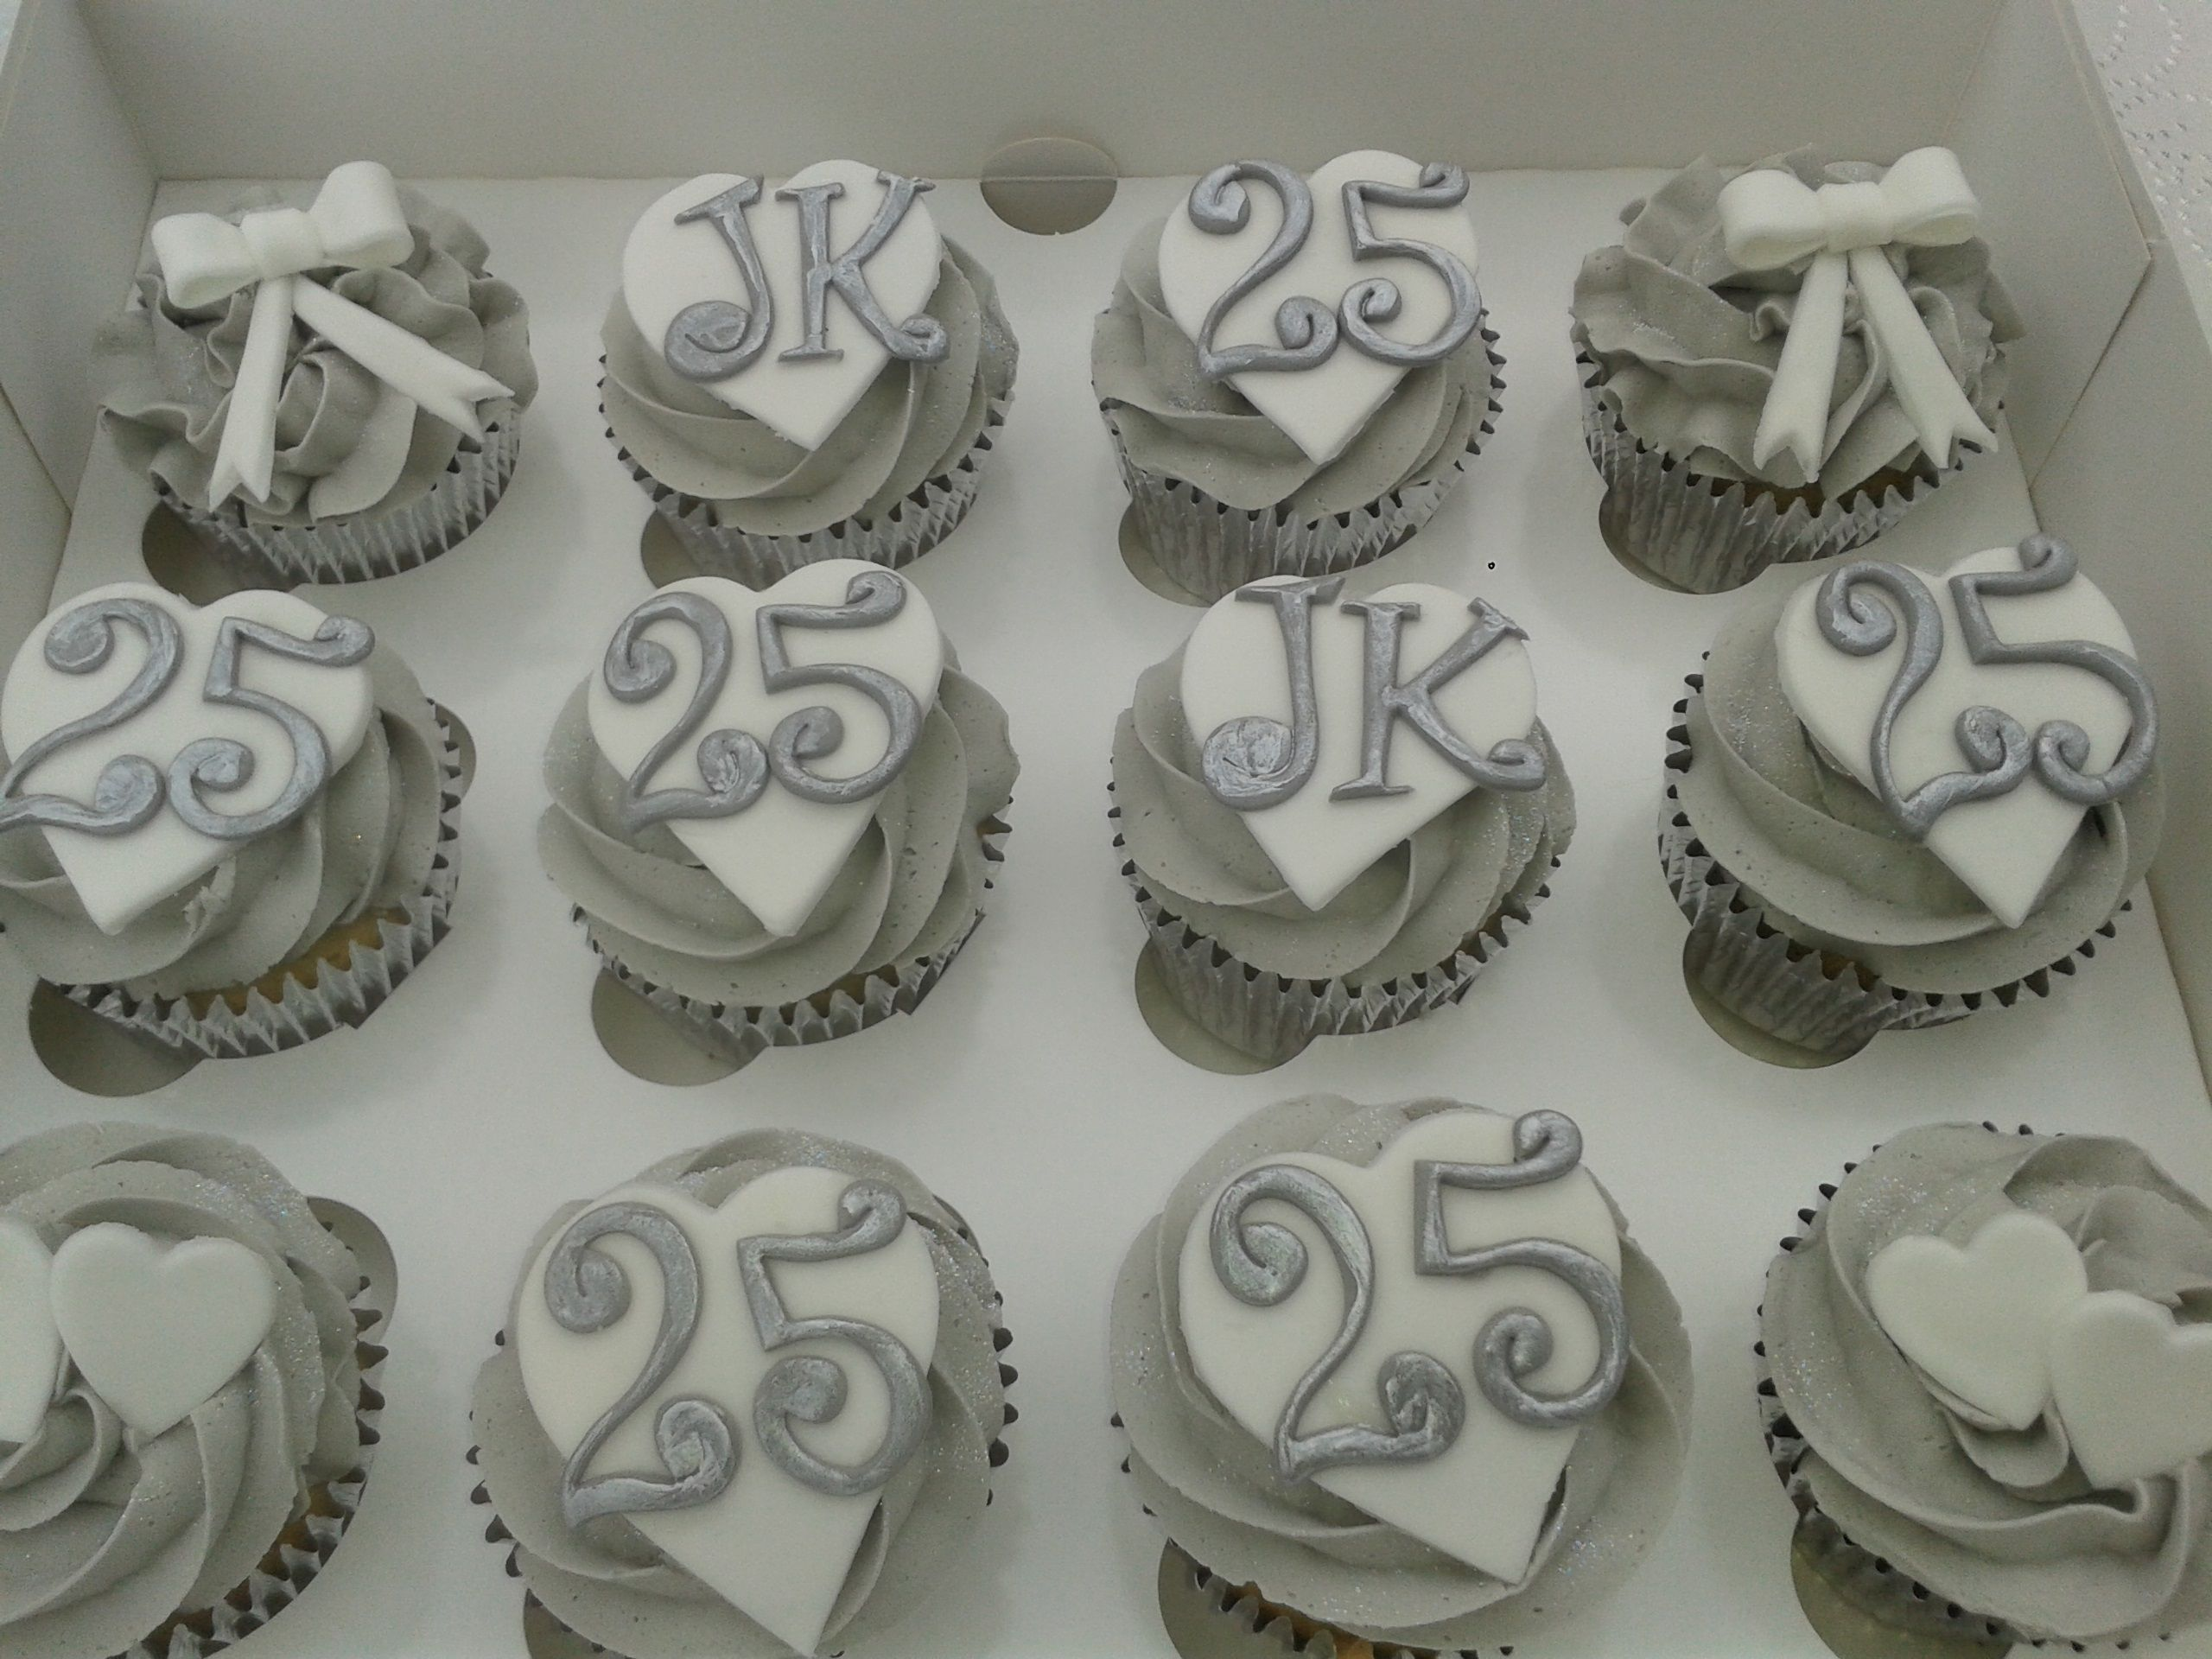 25th wedding anniversary Vanilla cupcakes in silver foil cake cases topped with a swirl of vanilla butter cream finished 25th Wedding Anniversary